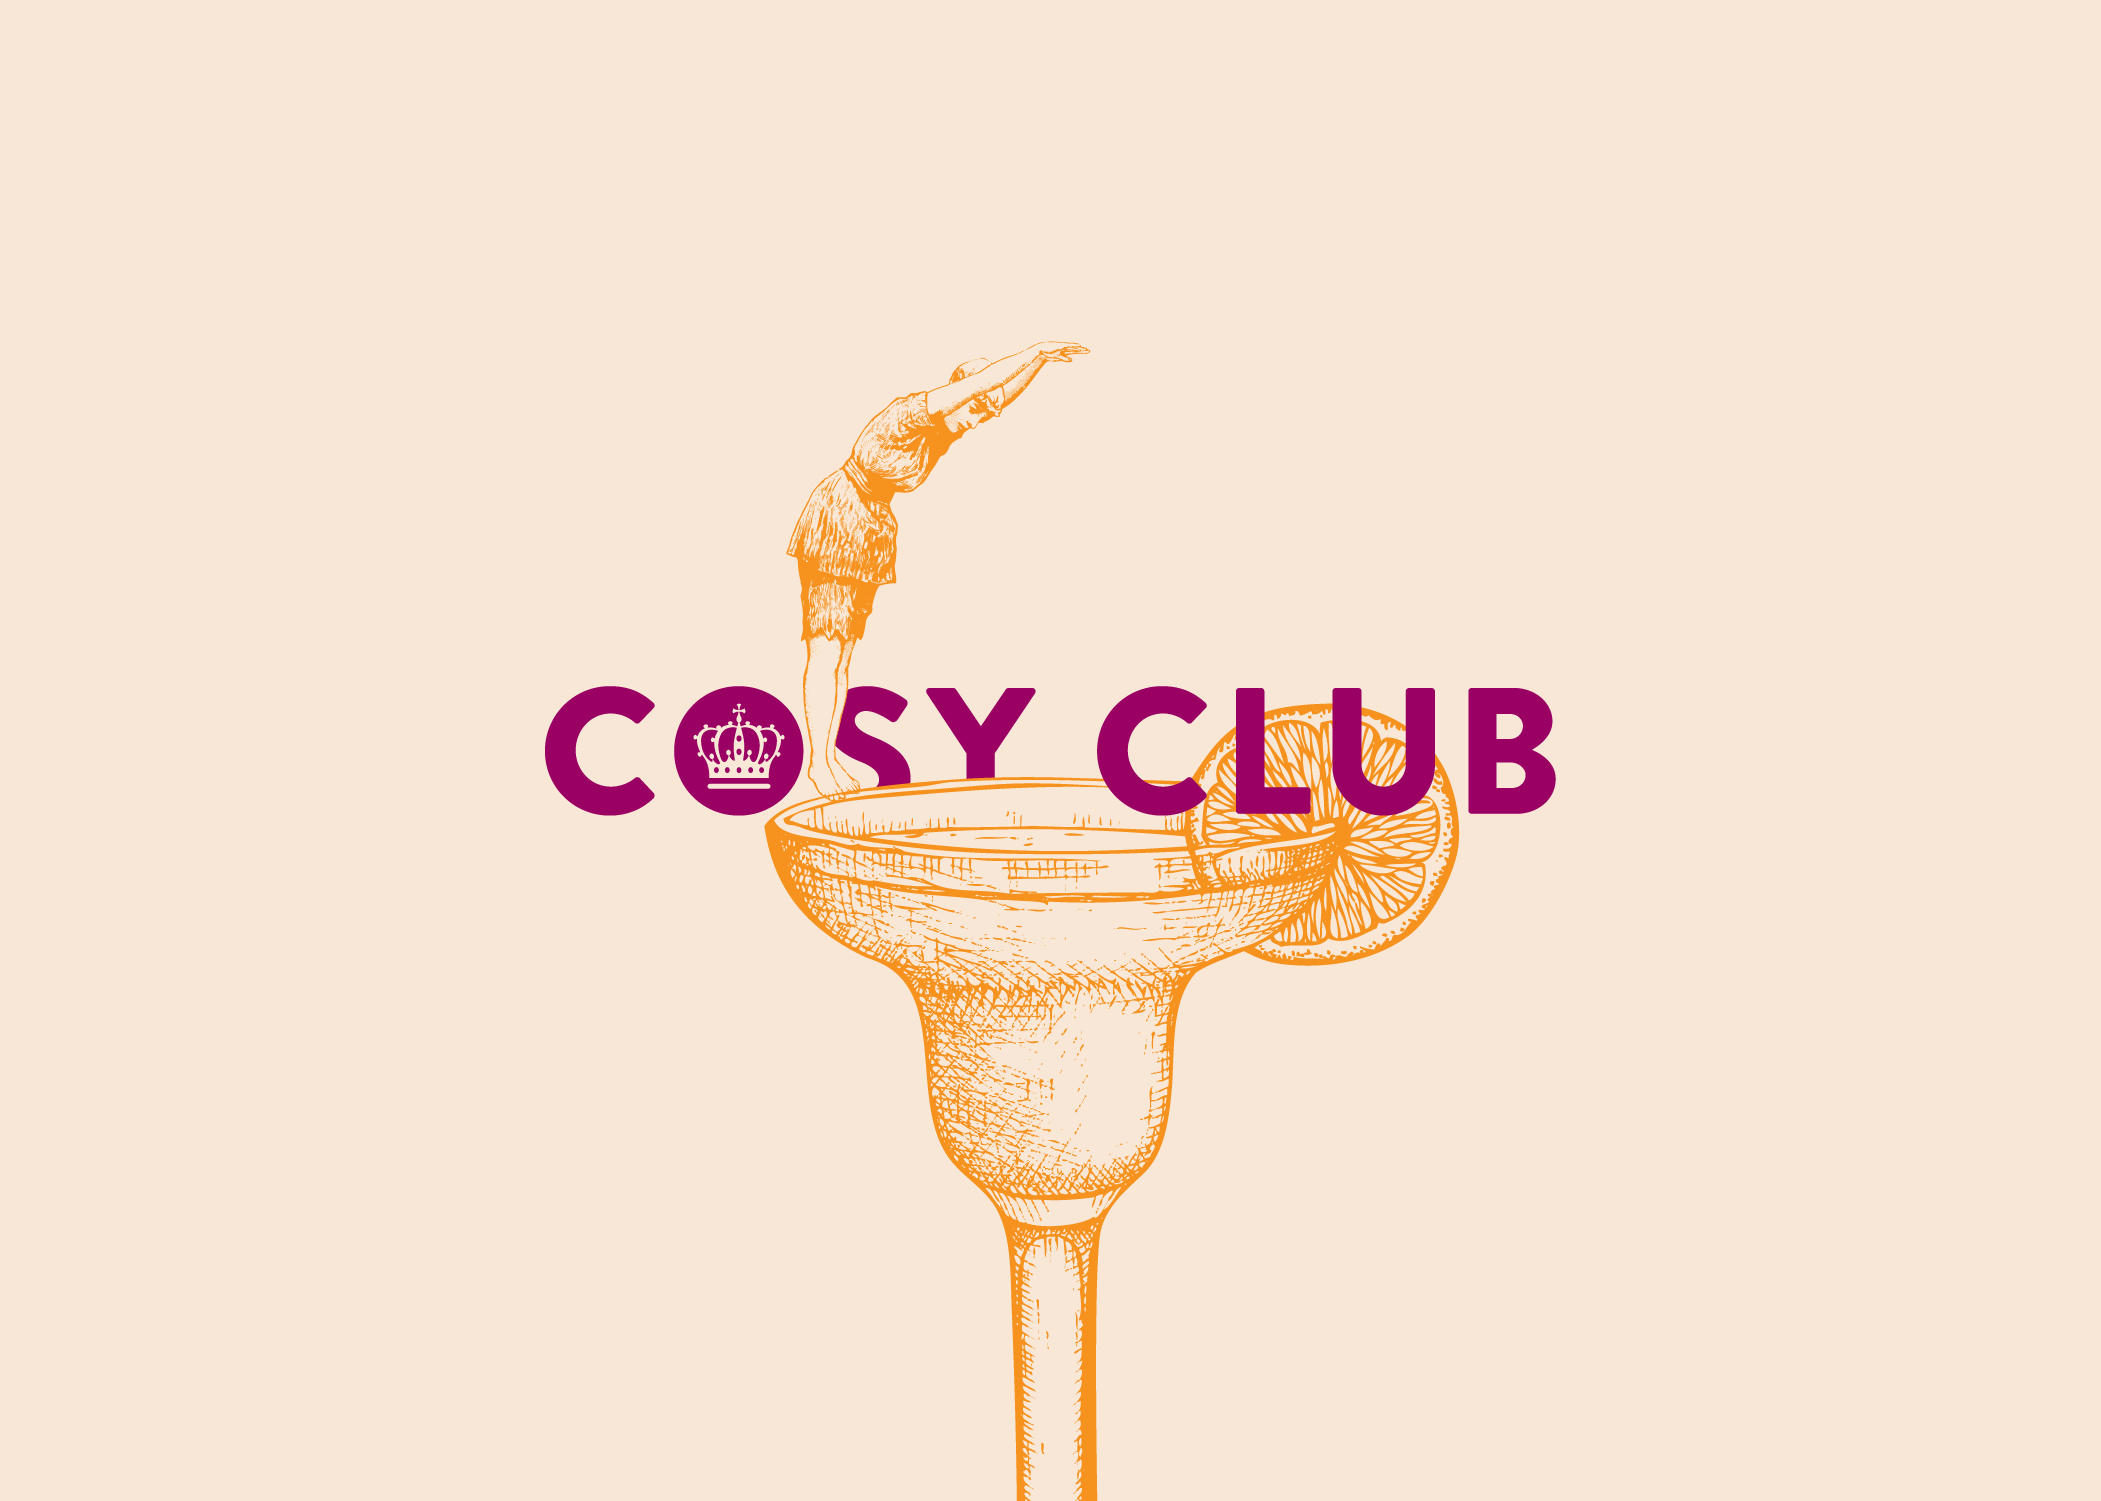 Quirky and playful illustrations for Cosy Club by Fiasco Design